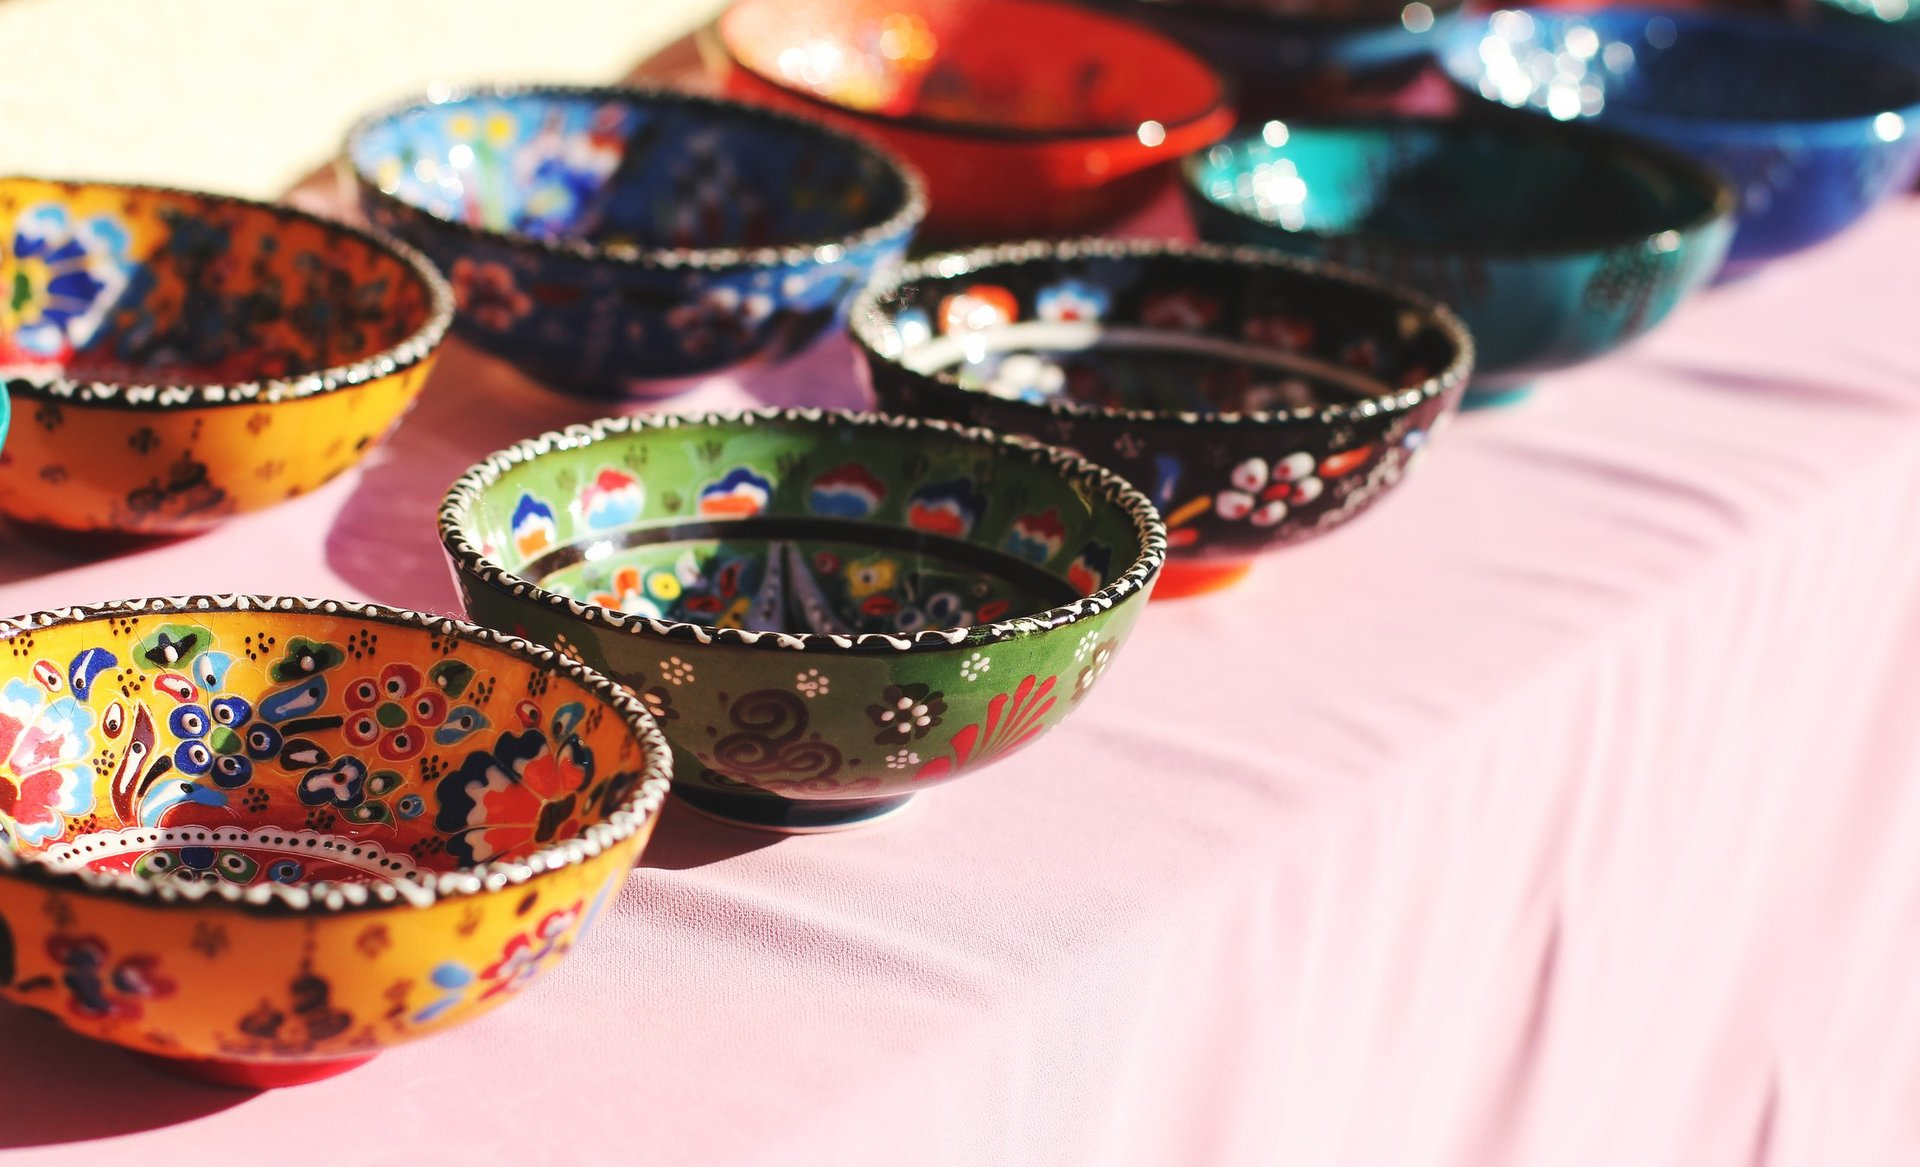 Paint your own pottery san antonio new braunfels tx for Paint your own pottery ideas